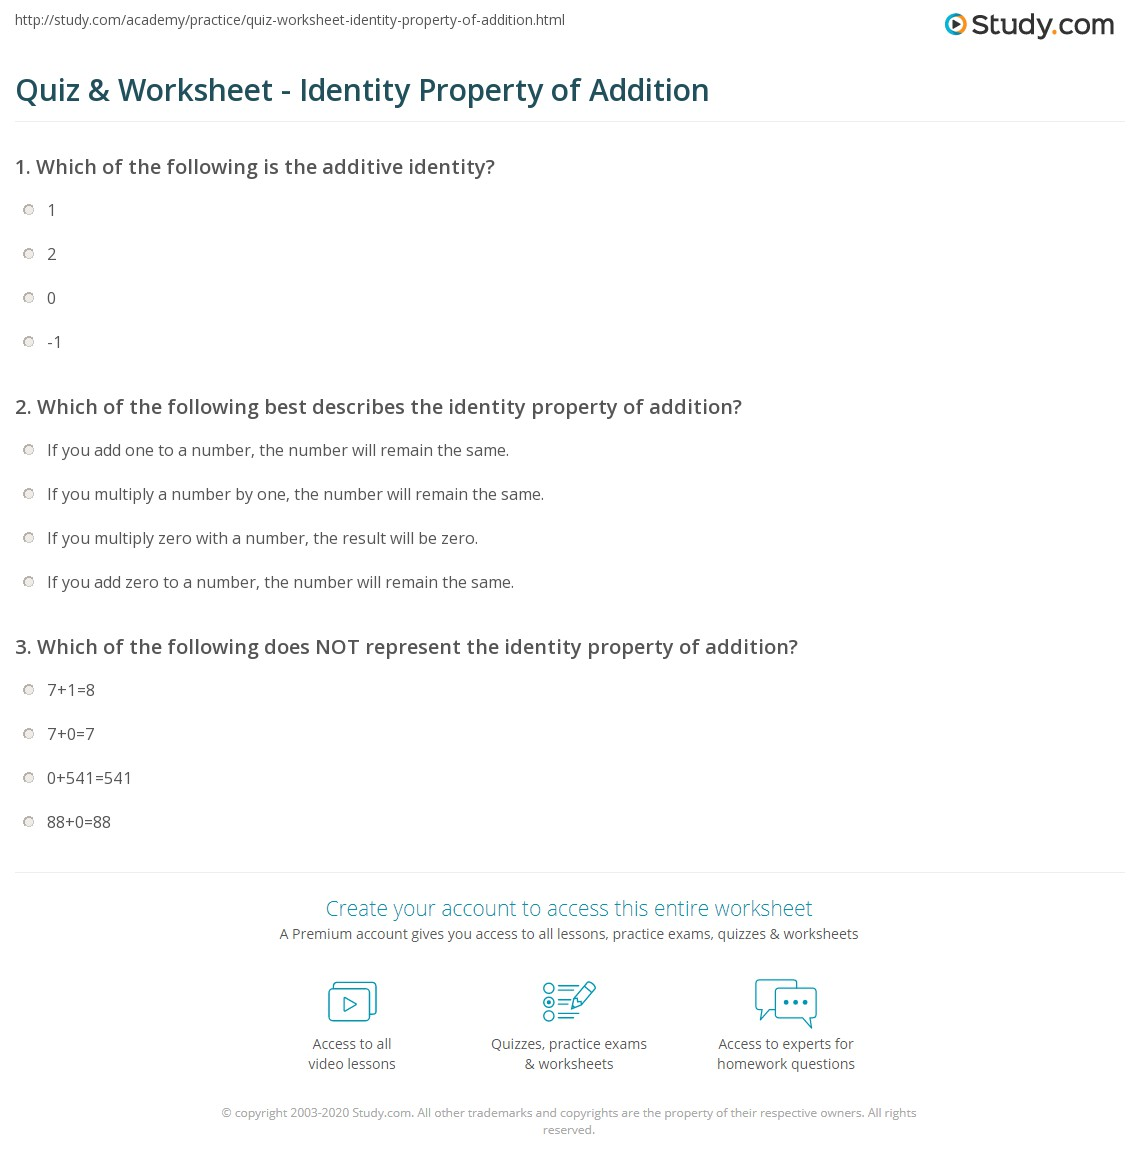 Quiz & Worksheet - Identity Property of Addition | Study.com